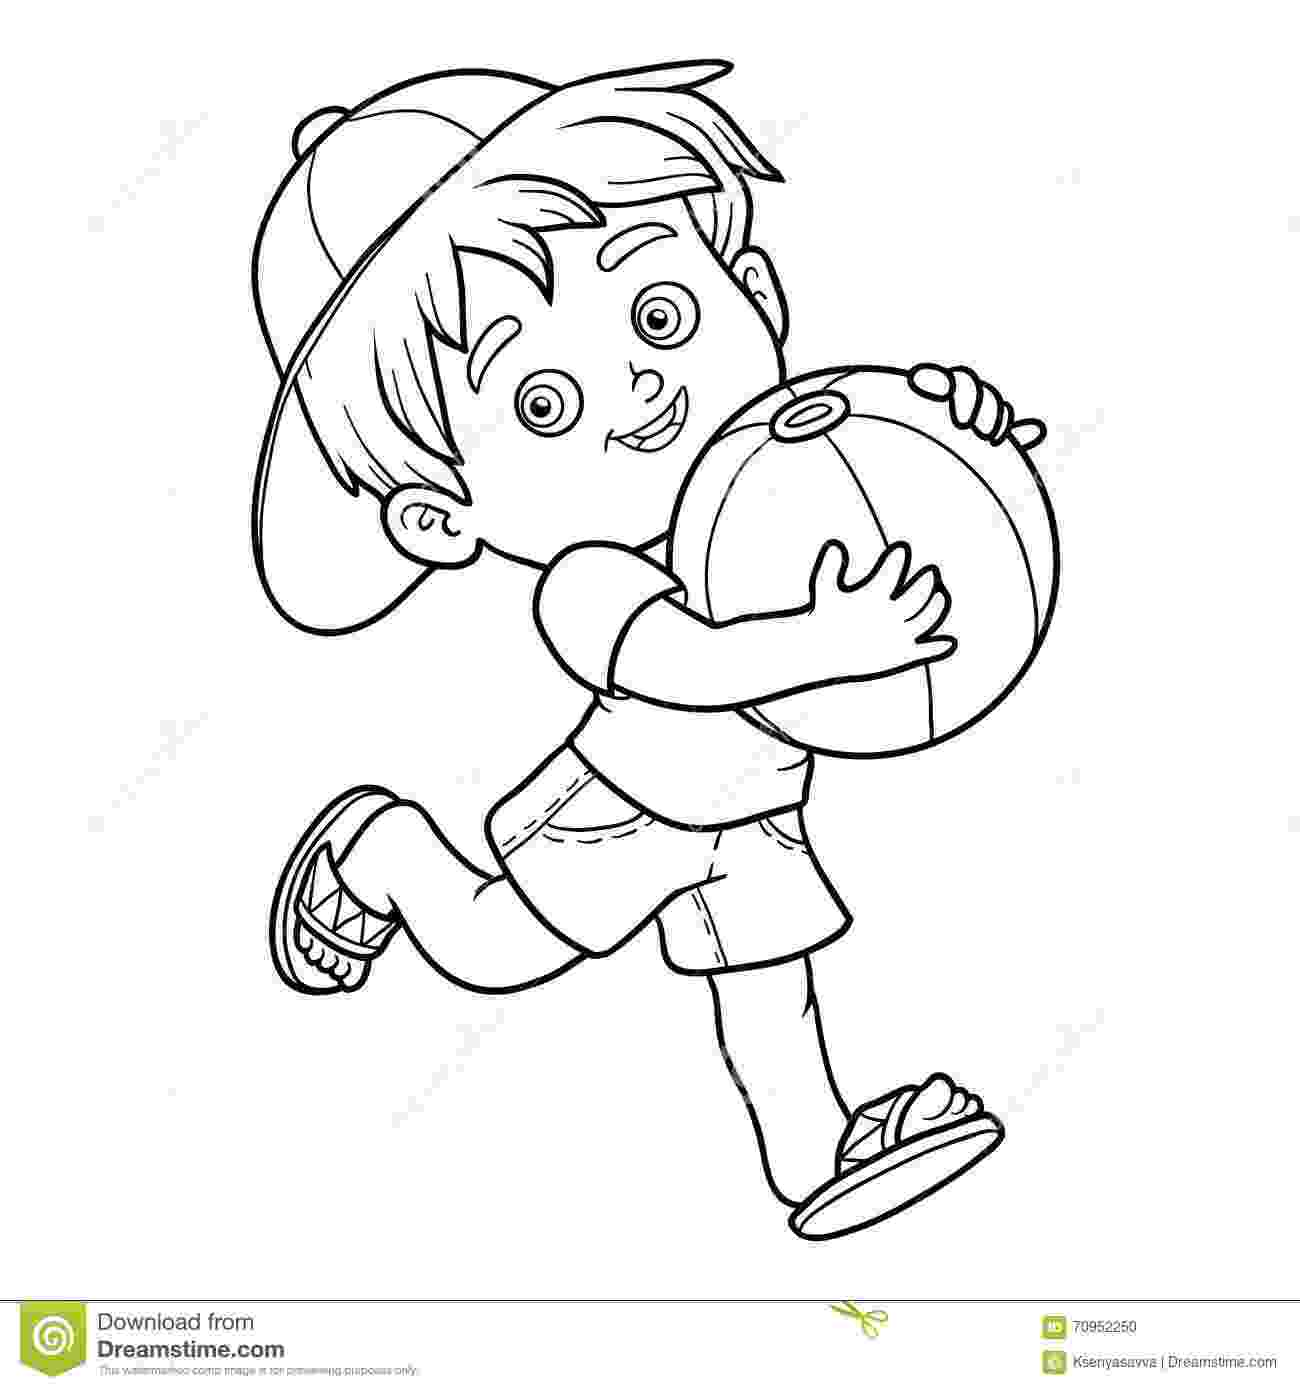 picture of a boy to color simple boys coloring pages boy color picture a to of